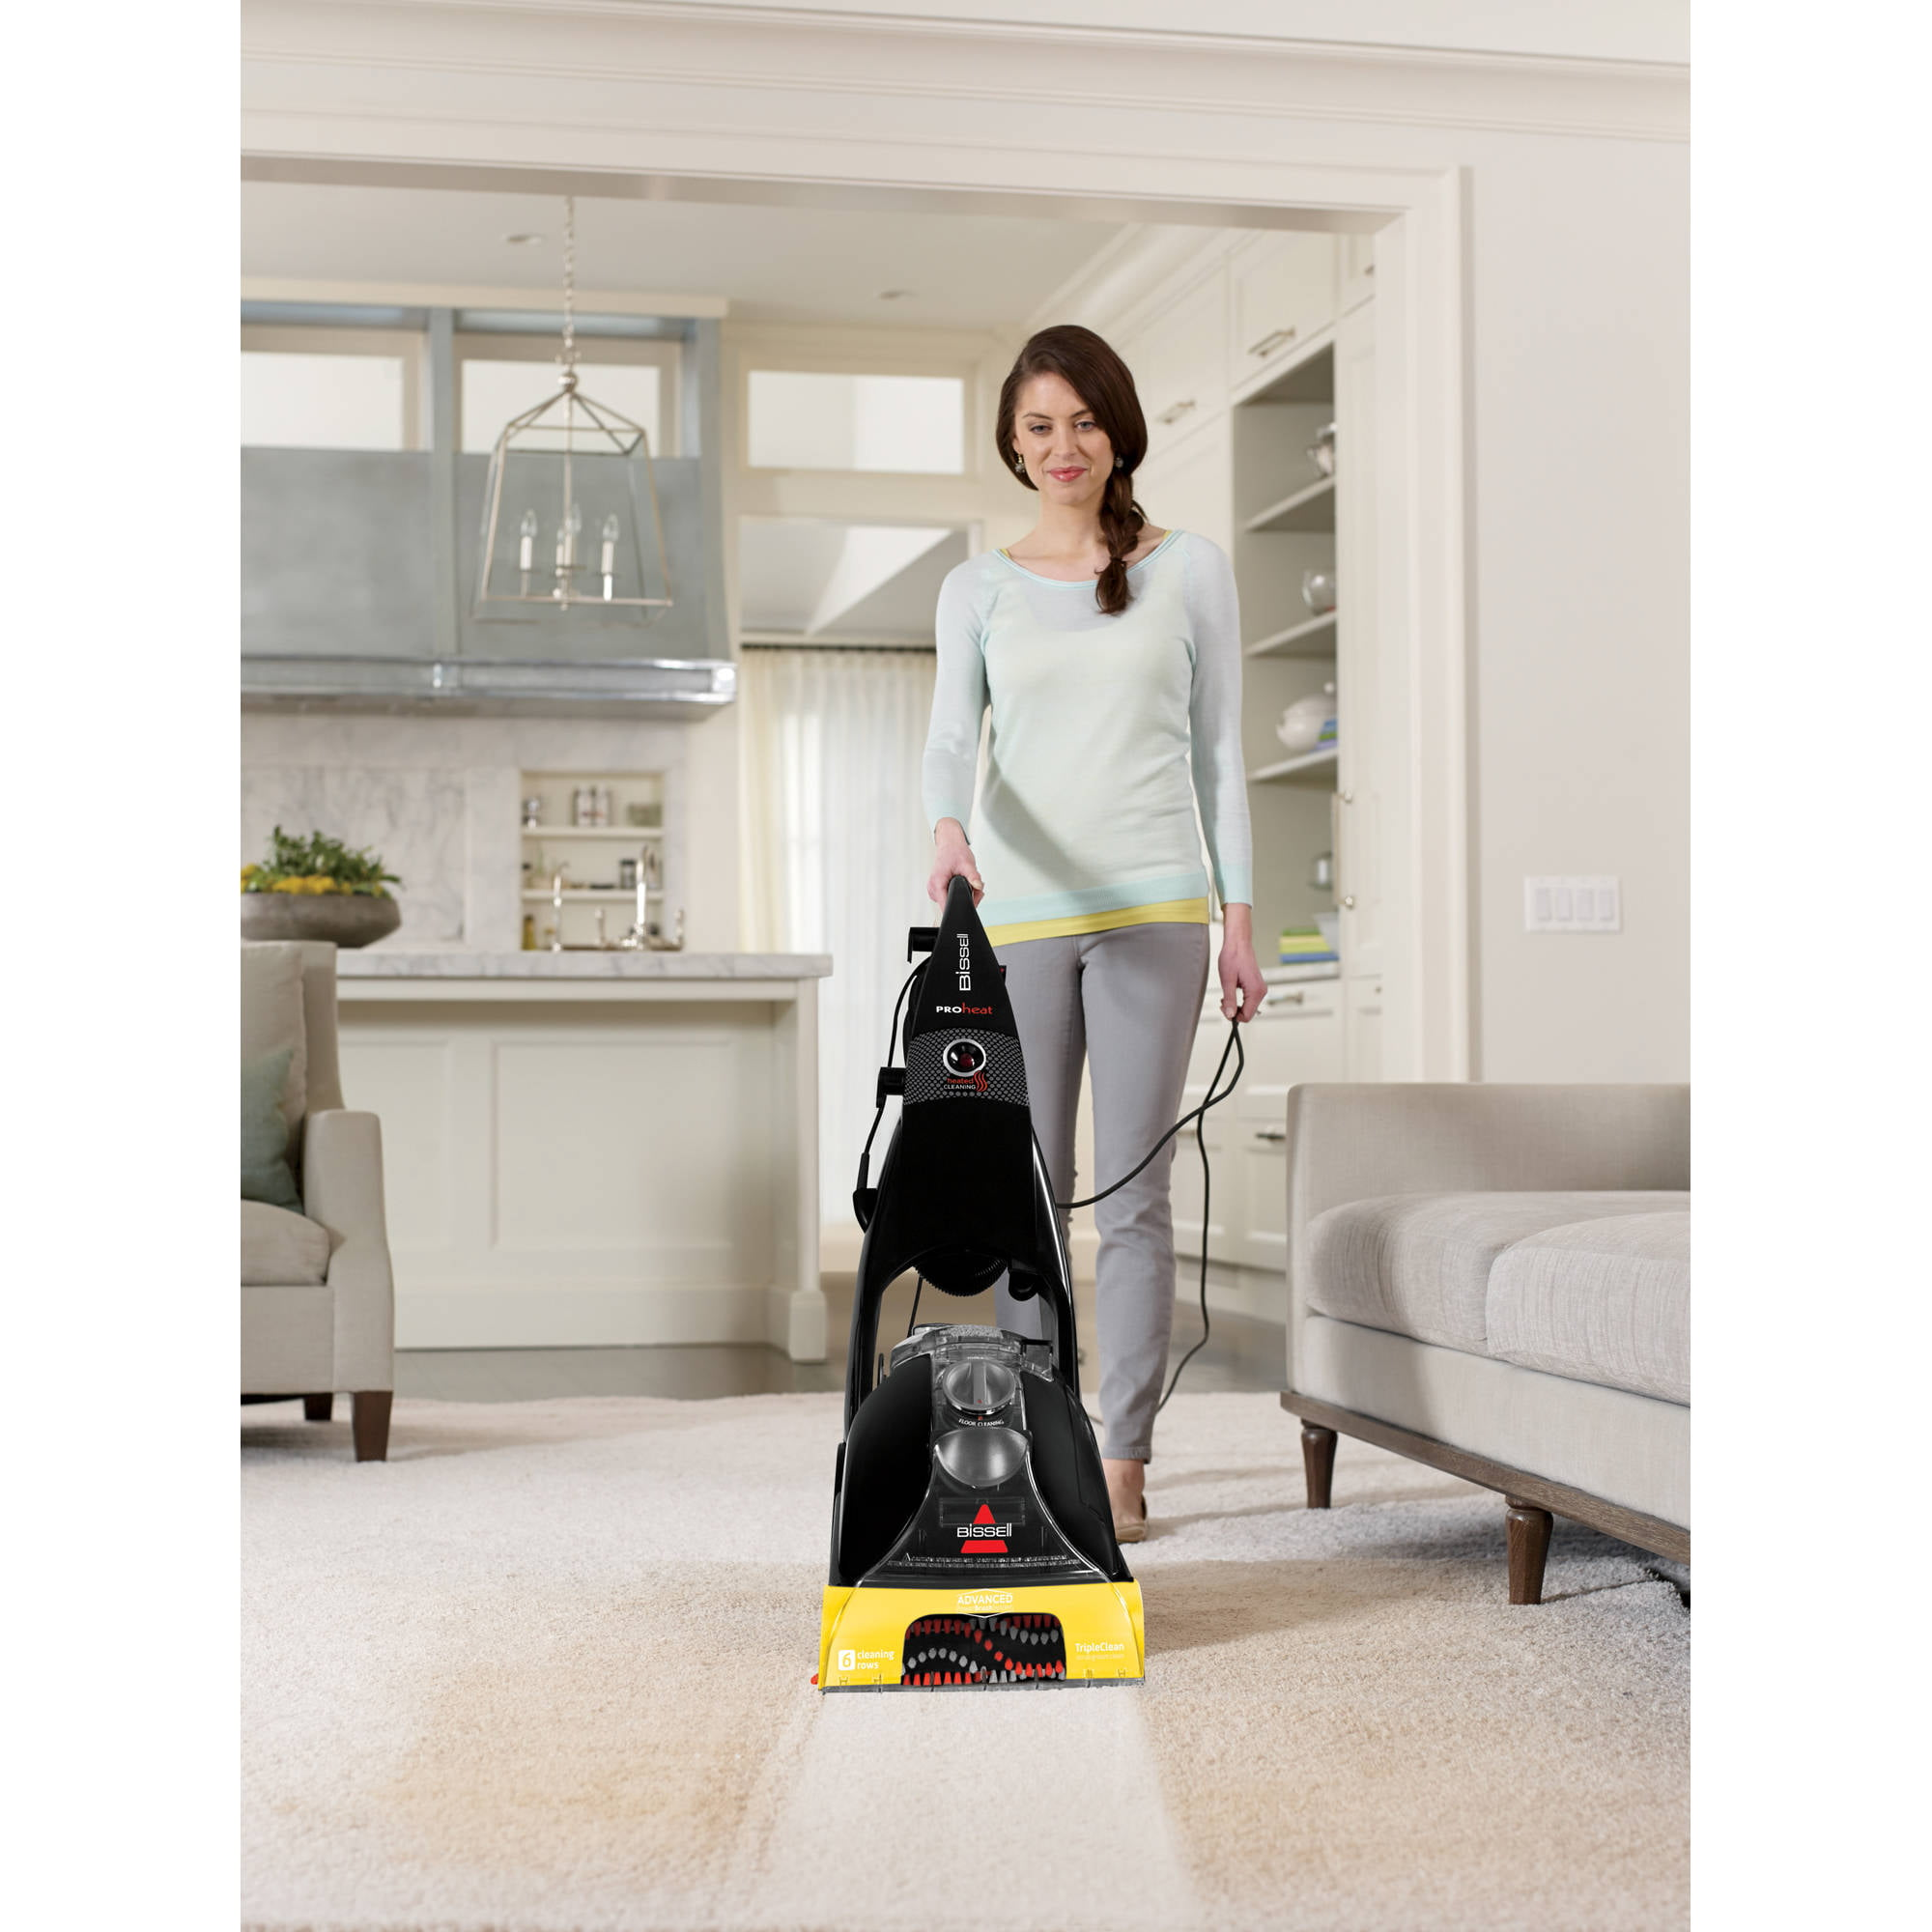 BISSELL Proheat Advanced Full Size Carpet Cleaner With Heatwave Technology,  1846   Walmart.com